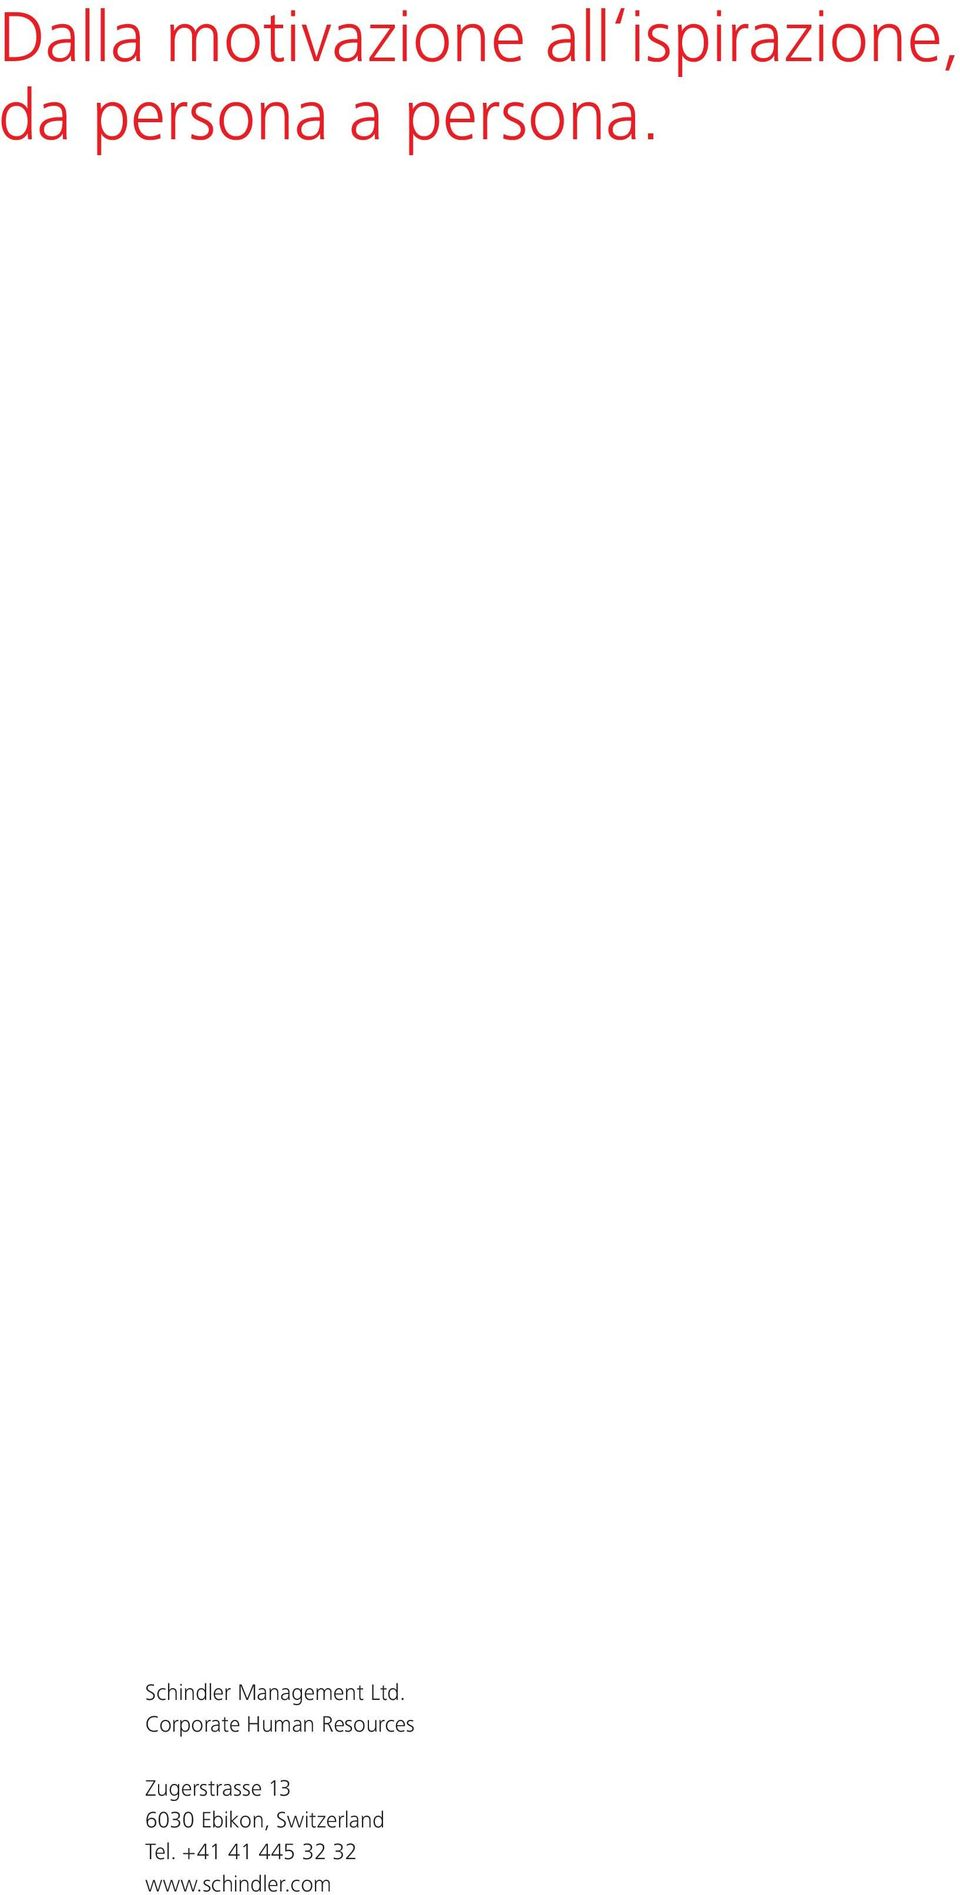 Corporate Human Resources Zugerstrasse 13 6030